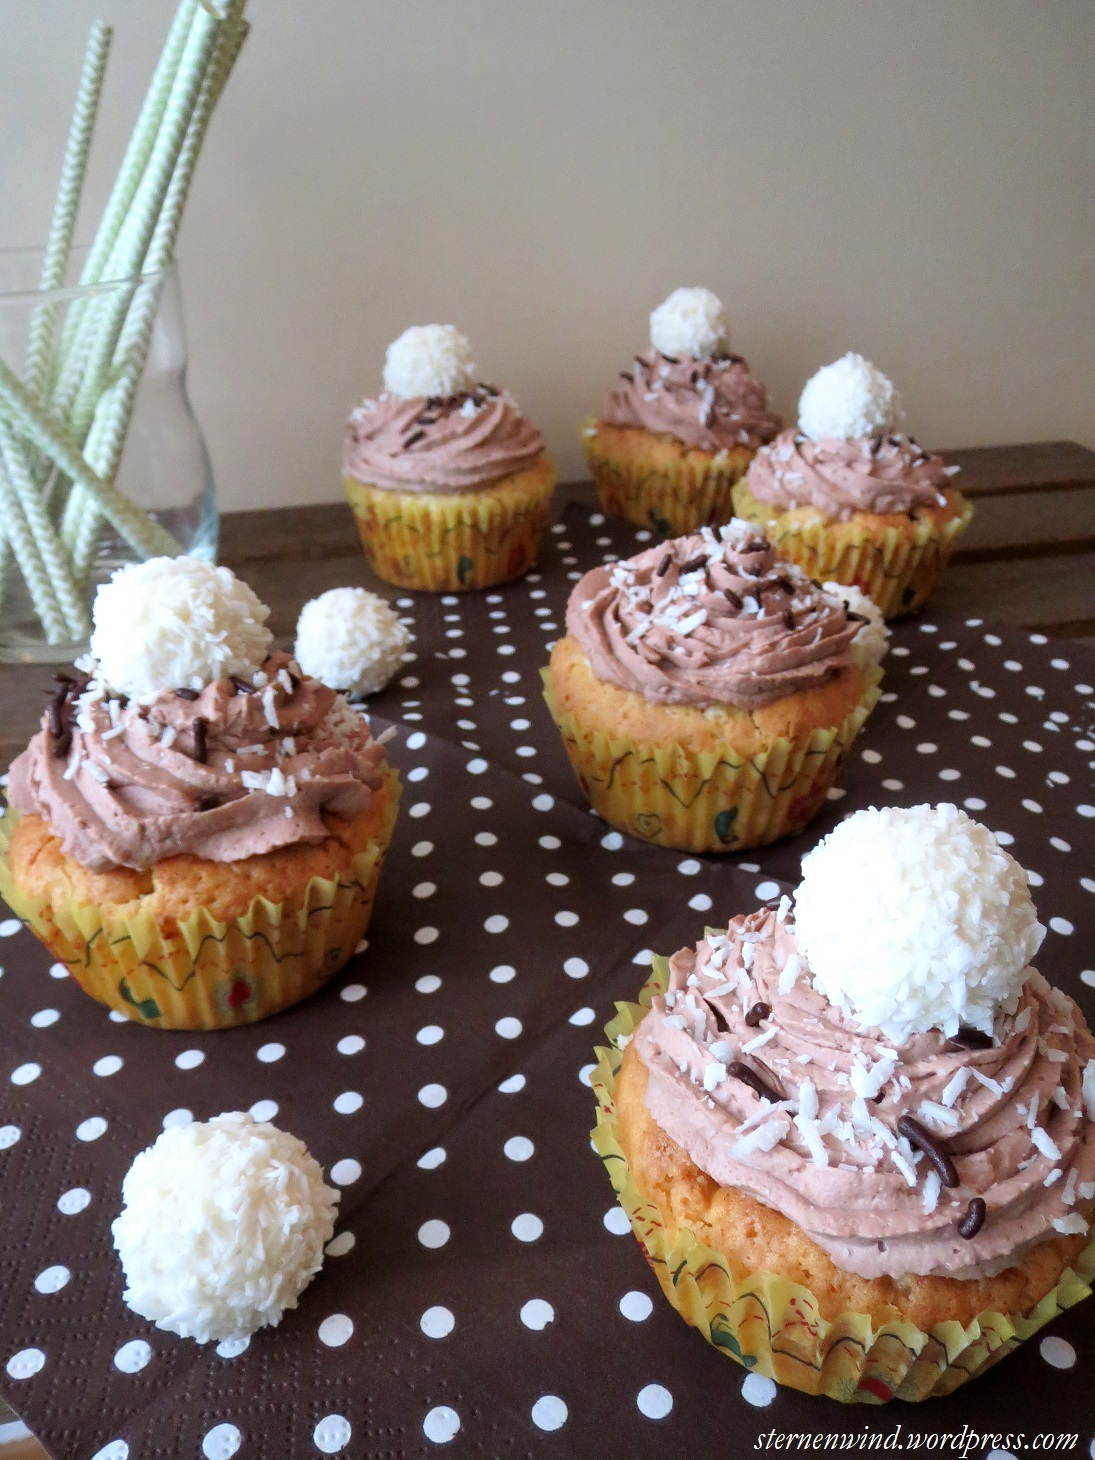 rezept raffaello cupcakes mit wei er schokolade und. Black Bedroom Furniture Sets. Home Design Ideas